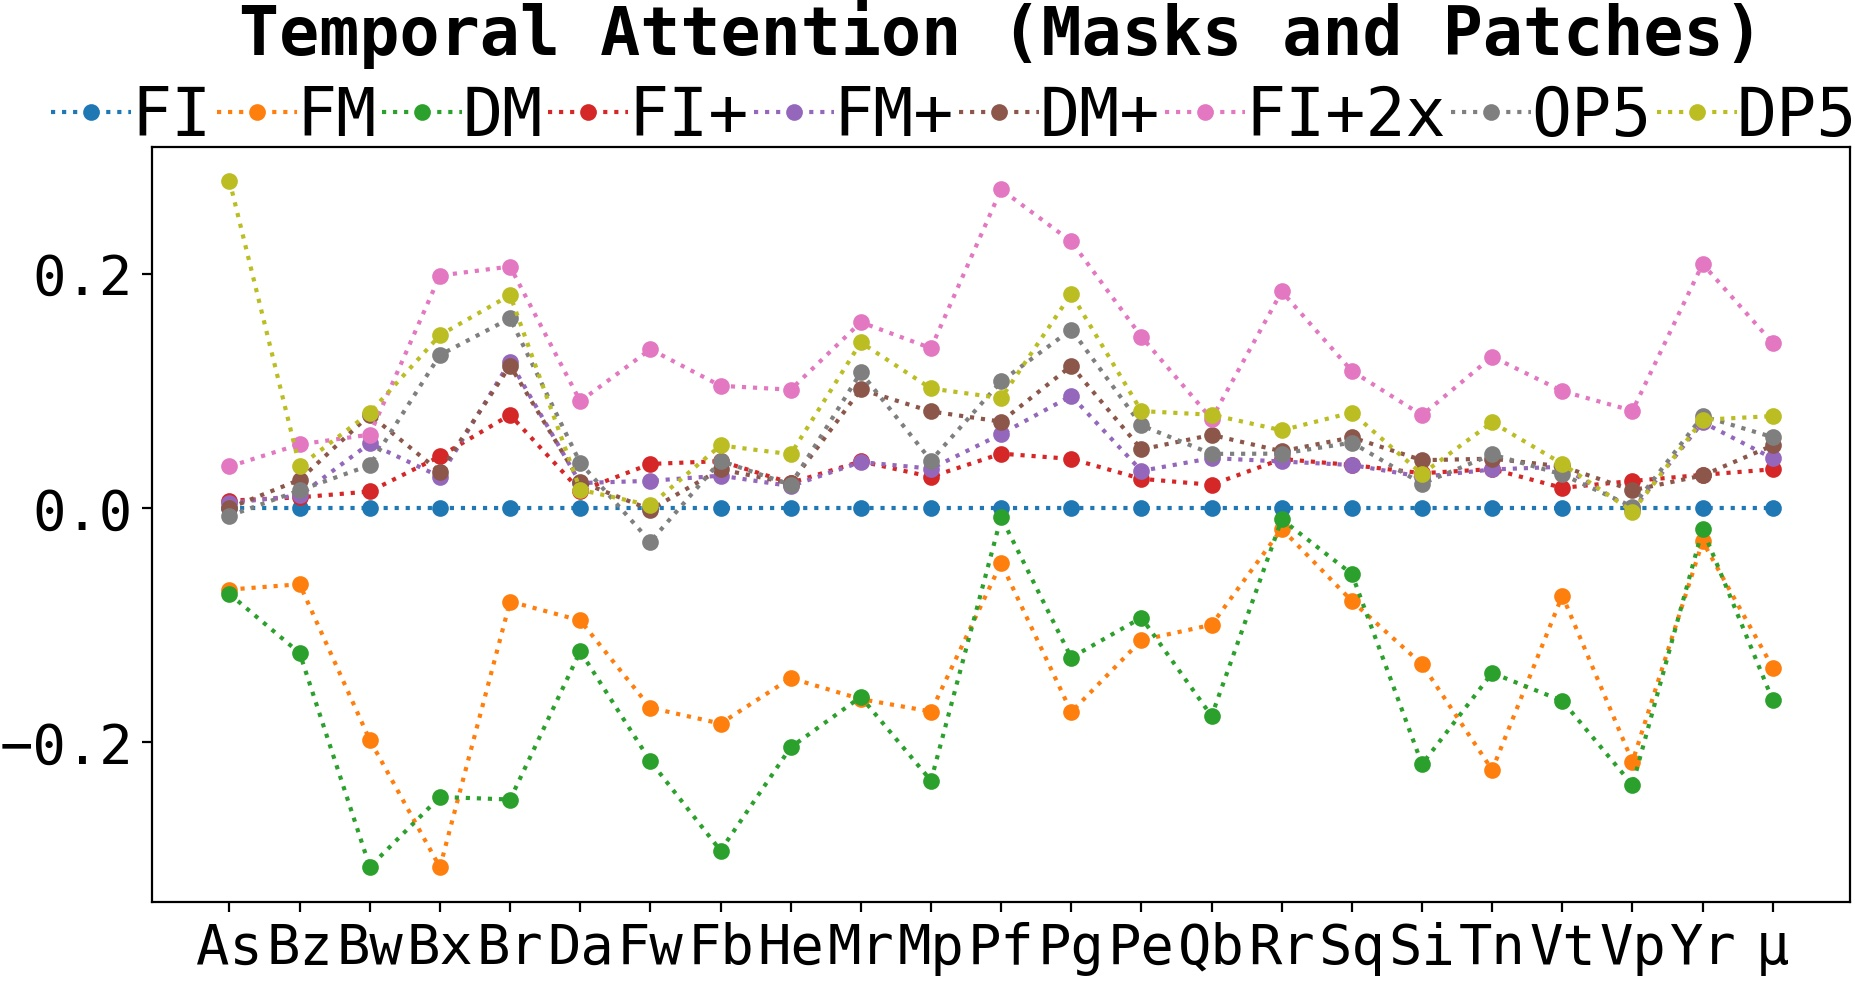 Temporal attention masks and patches vs vanilla results.